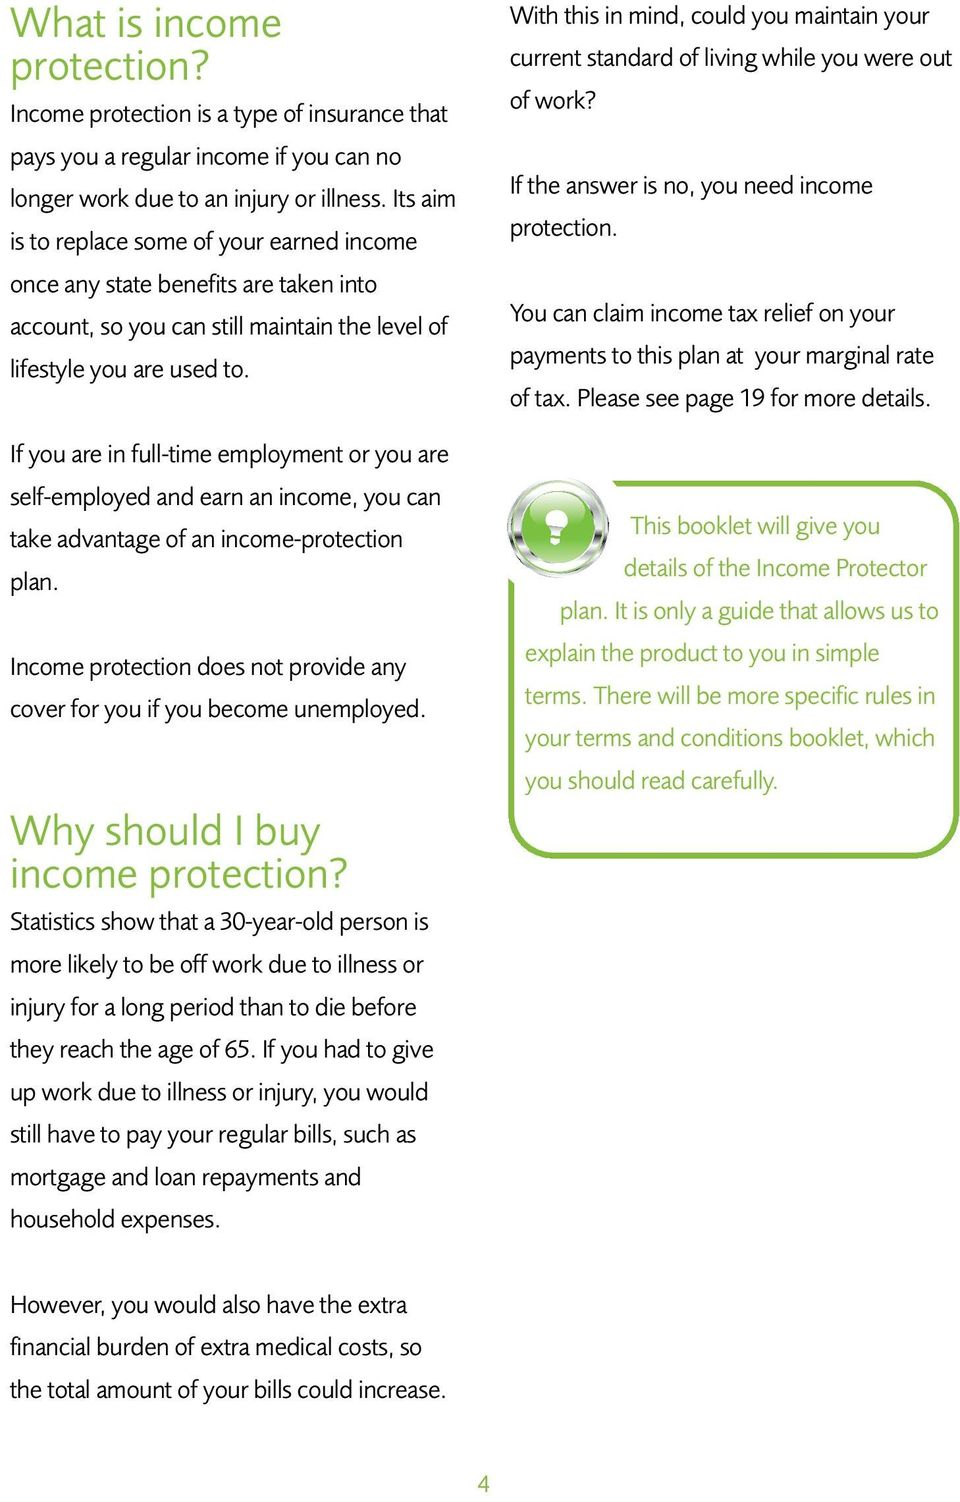 If you are in full-time employment or you are self-employed and earn an income, you can take advantage of an income-protection plan.